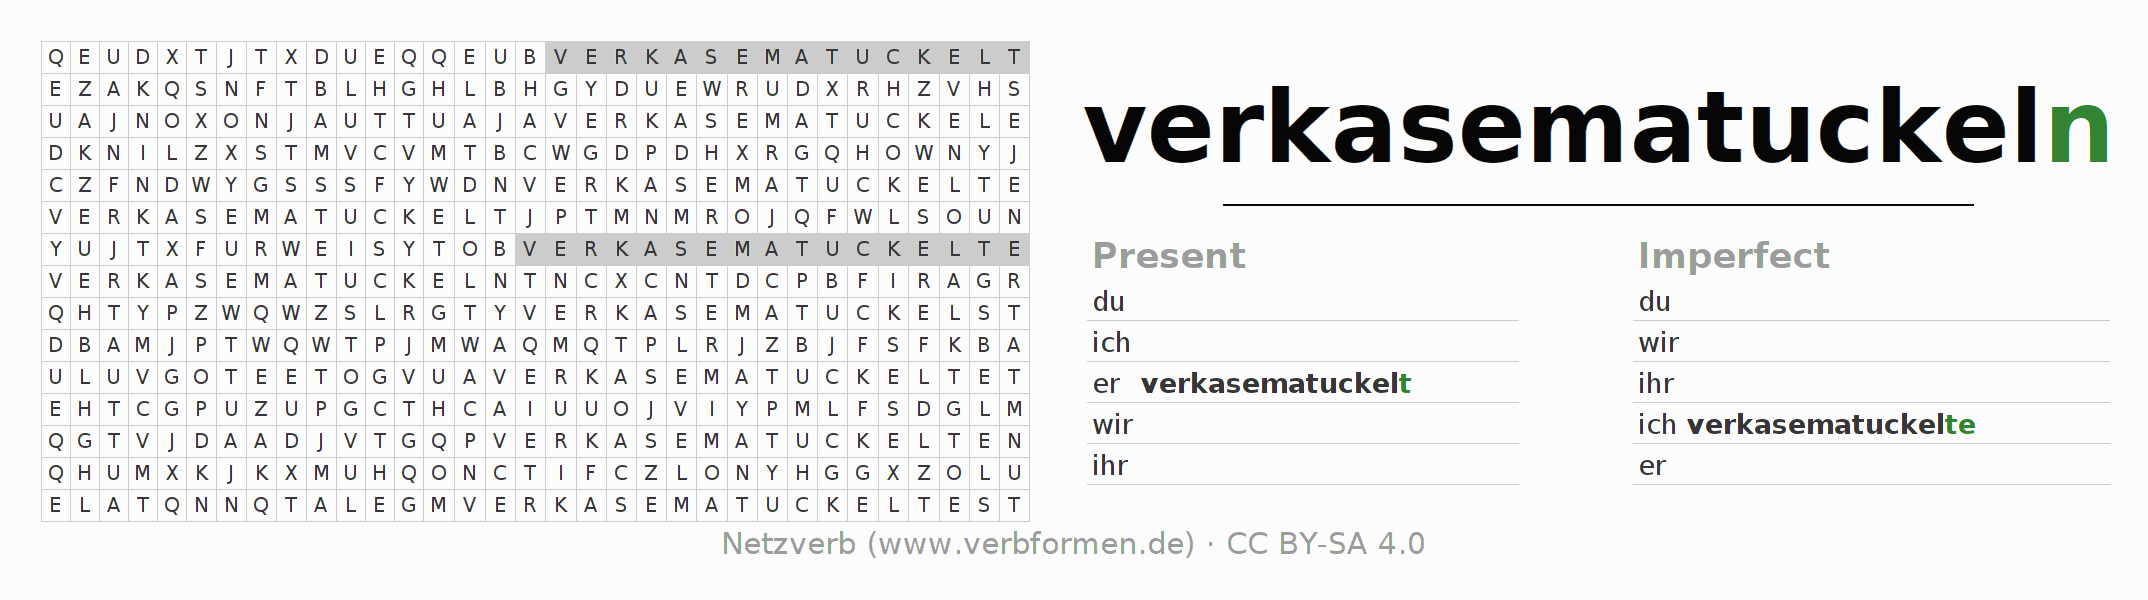 Word search puzzle for the conjugation of the verb verkasematuckeln